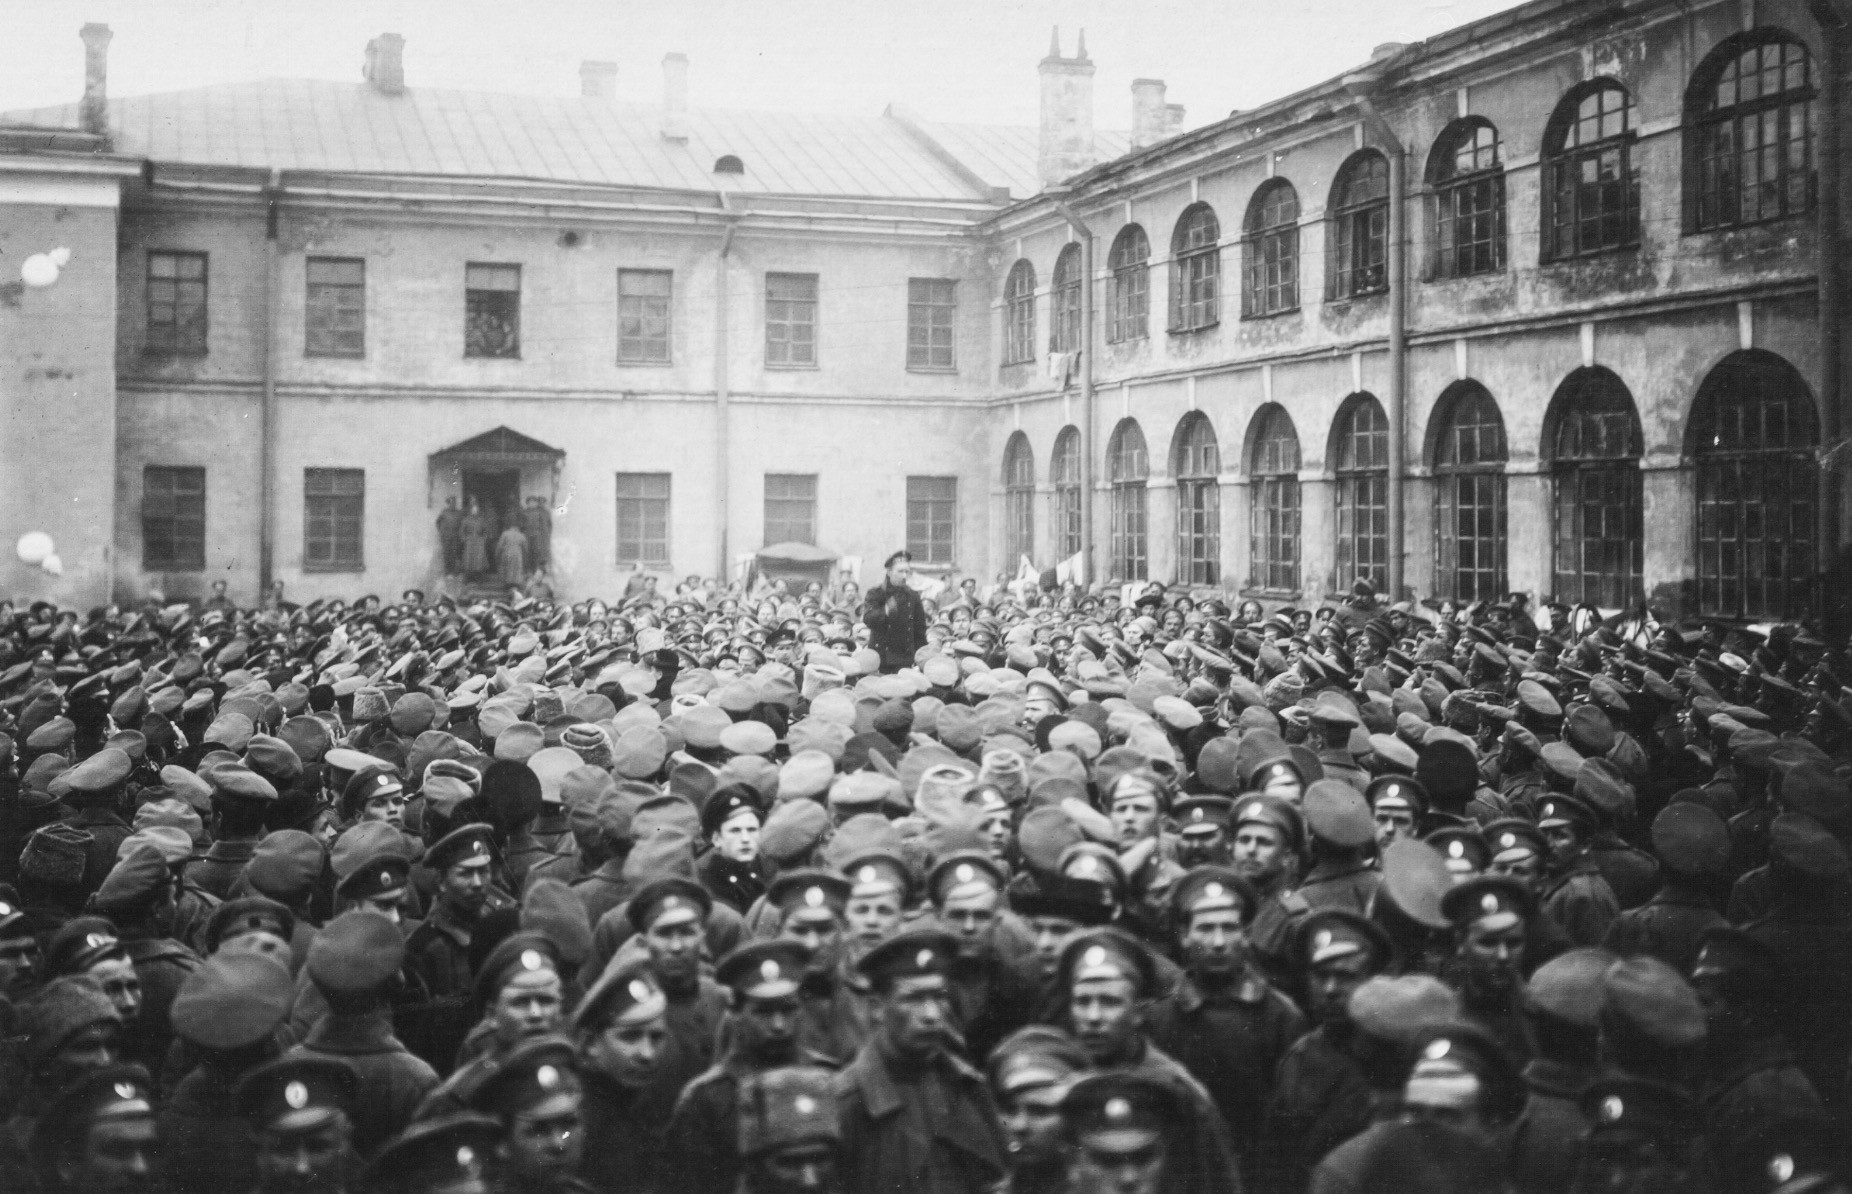 Soldiers of the Grenadier Regiments wait for Lenin's arrival on the parade ground near the barracks in St. Petersburg, Russia, October, 1917.